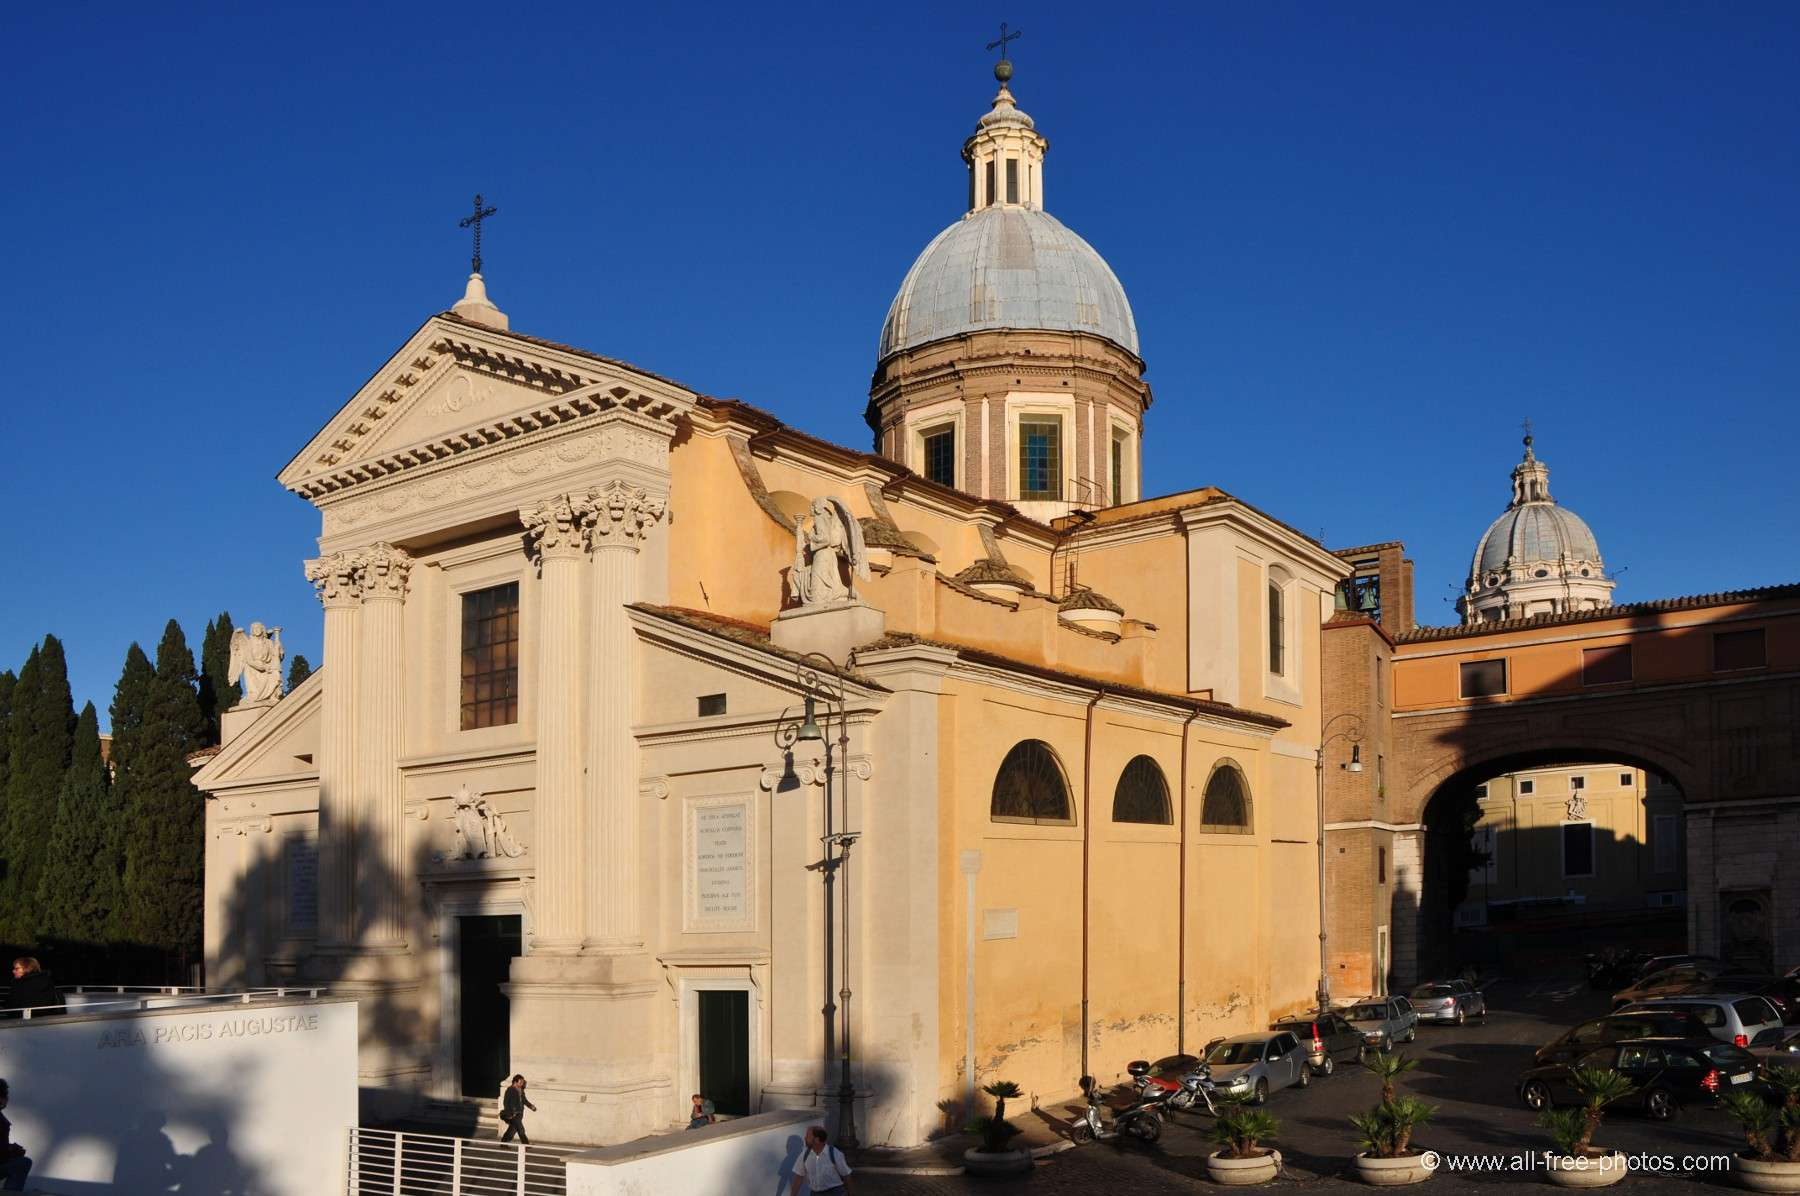 Church of San Girolamo dei Croati - Rome